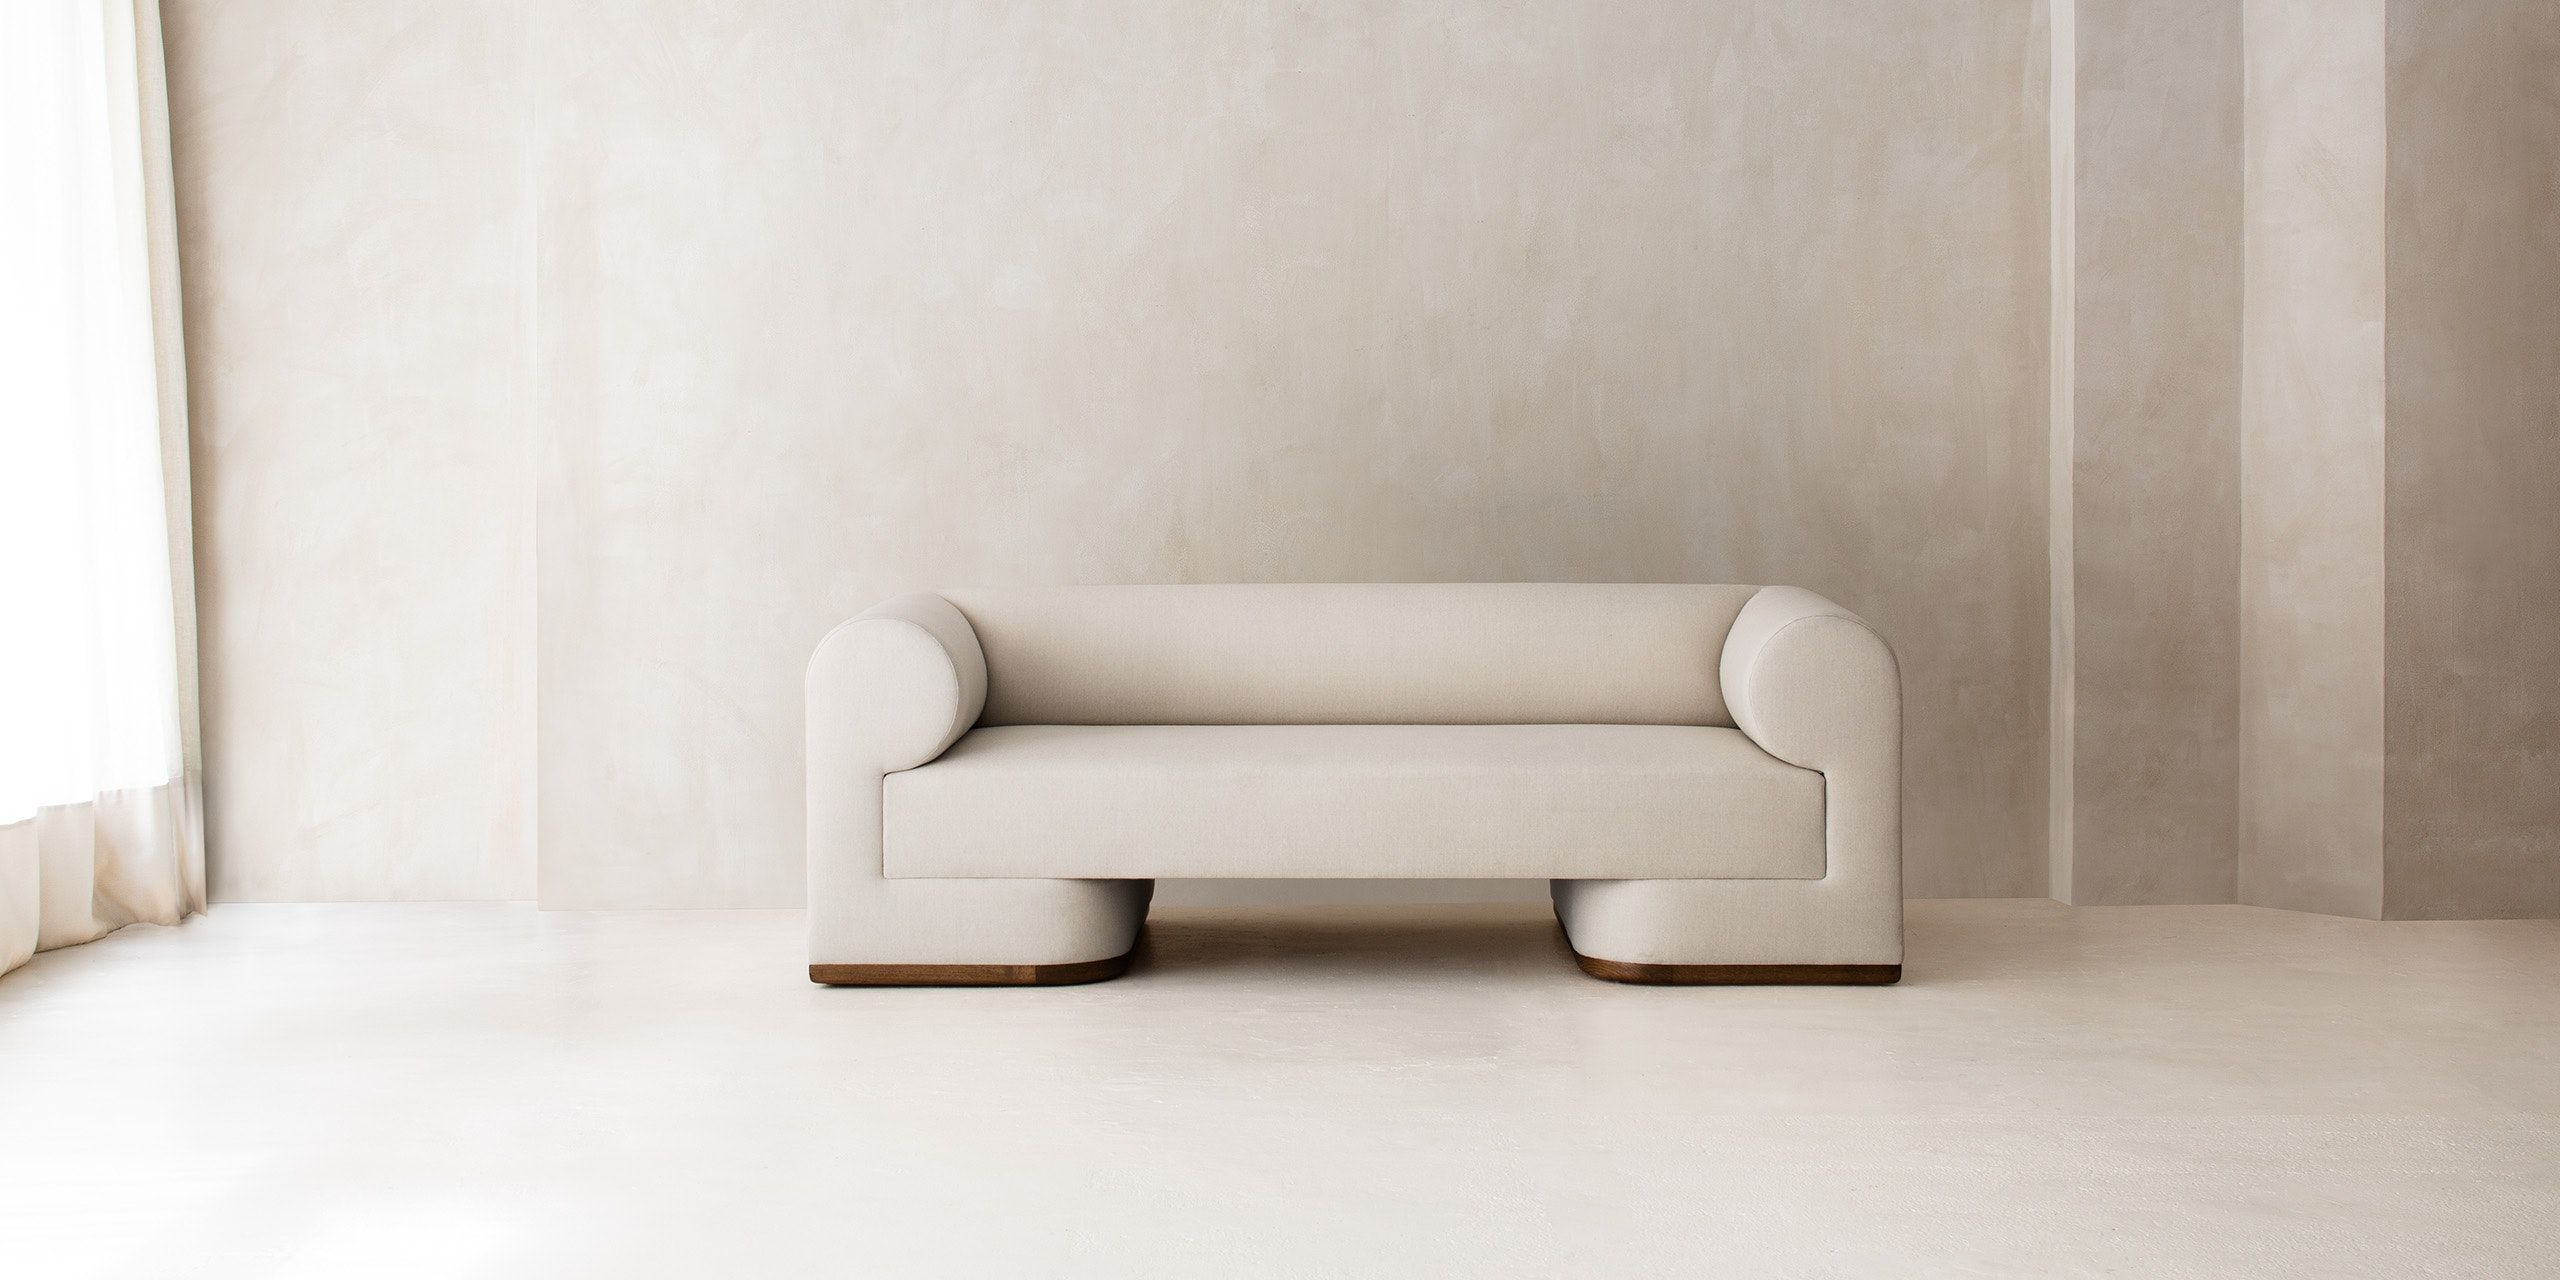 Dmitriy Co Products Dahlem Sofa Couch Furniture Couch